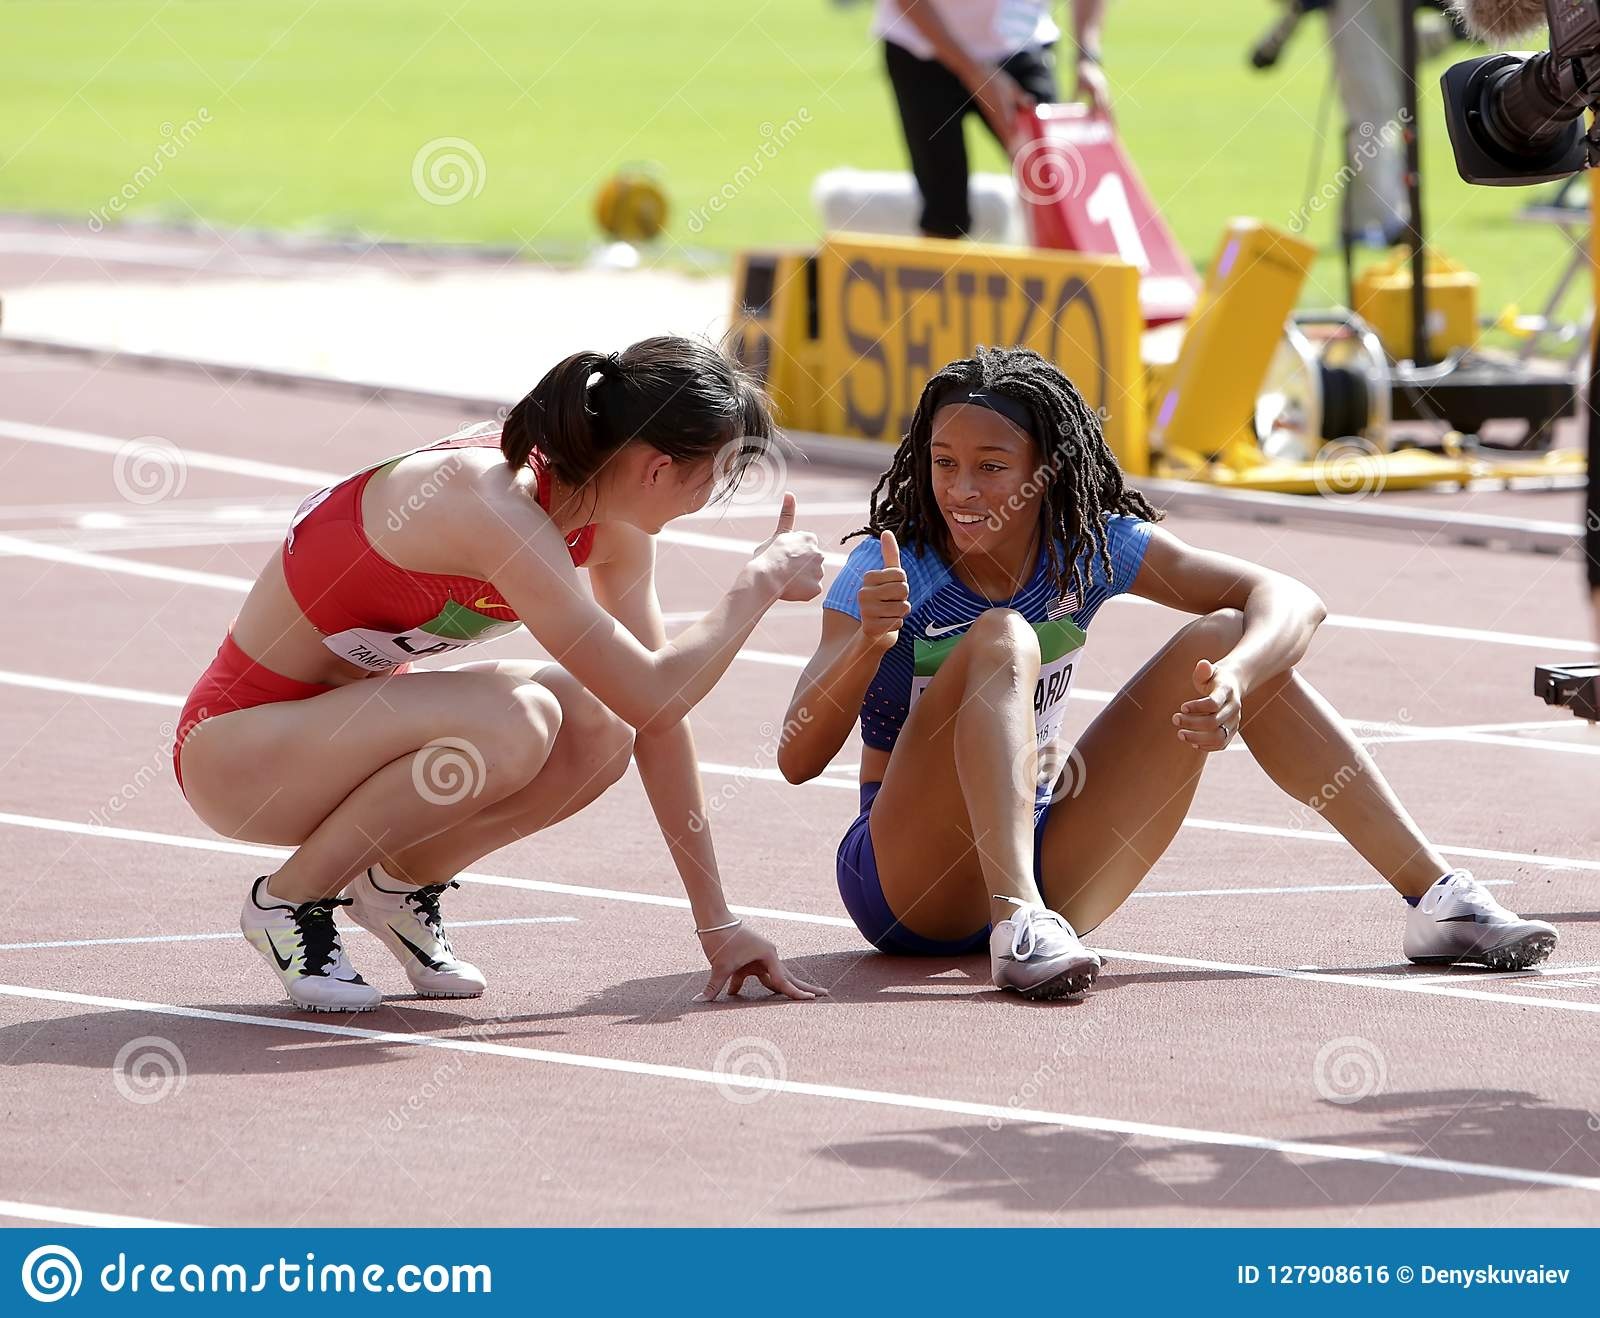 Jurnee Woodward and Tianlu Lan after 400 metres hurdles in the IAAF World U20 Championship in Tampere, Finland 11 July, 2018.